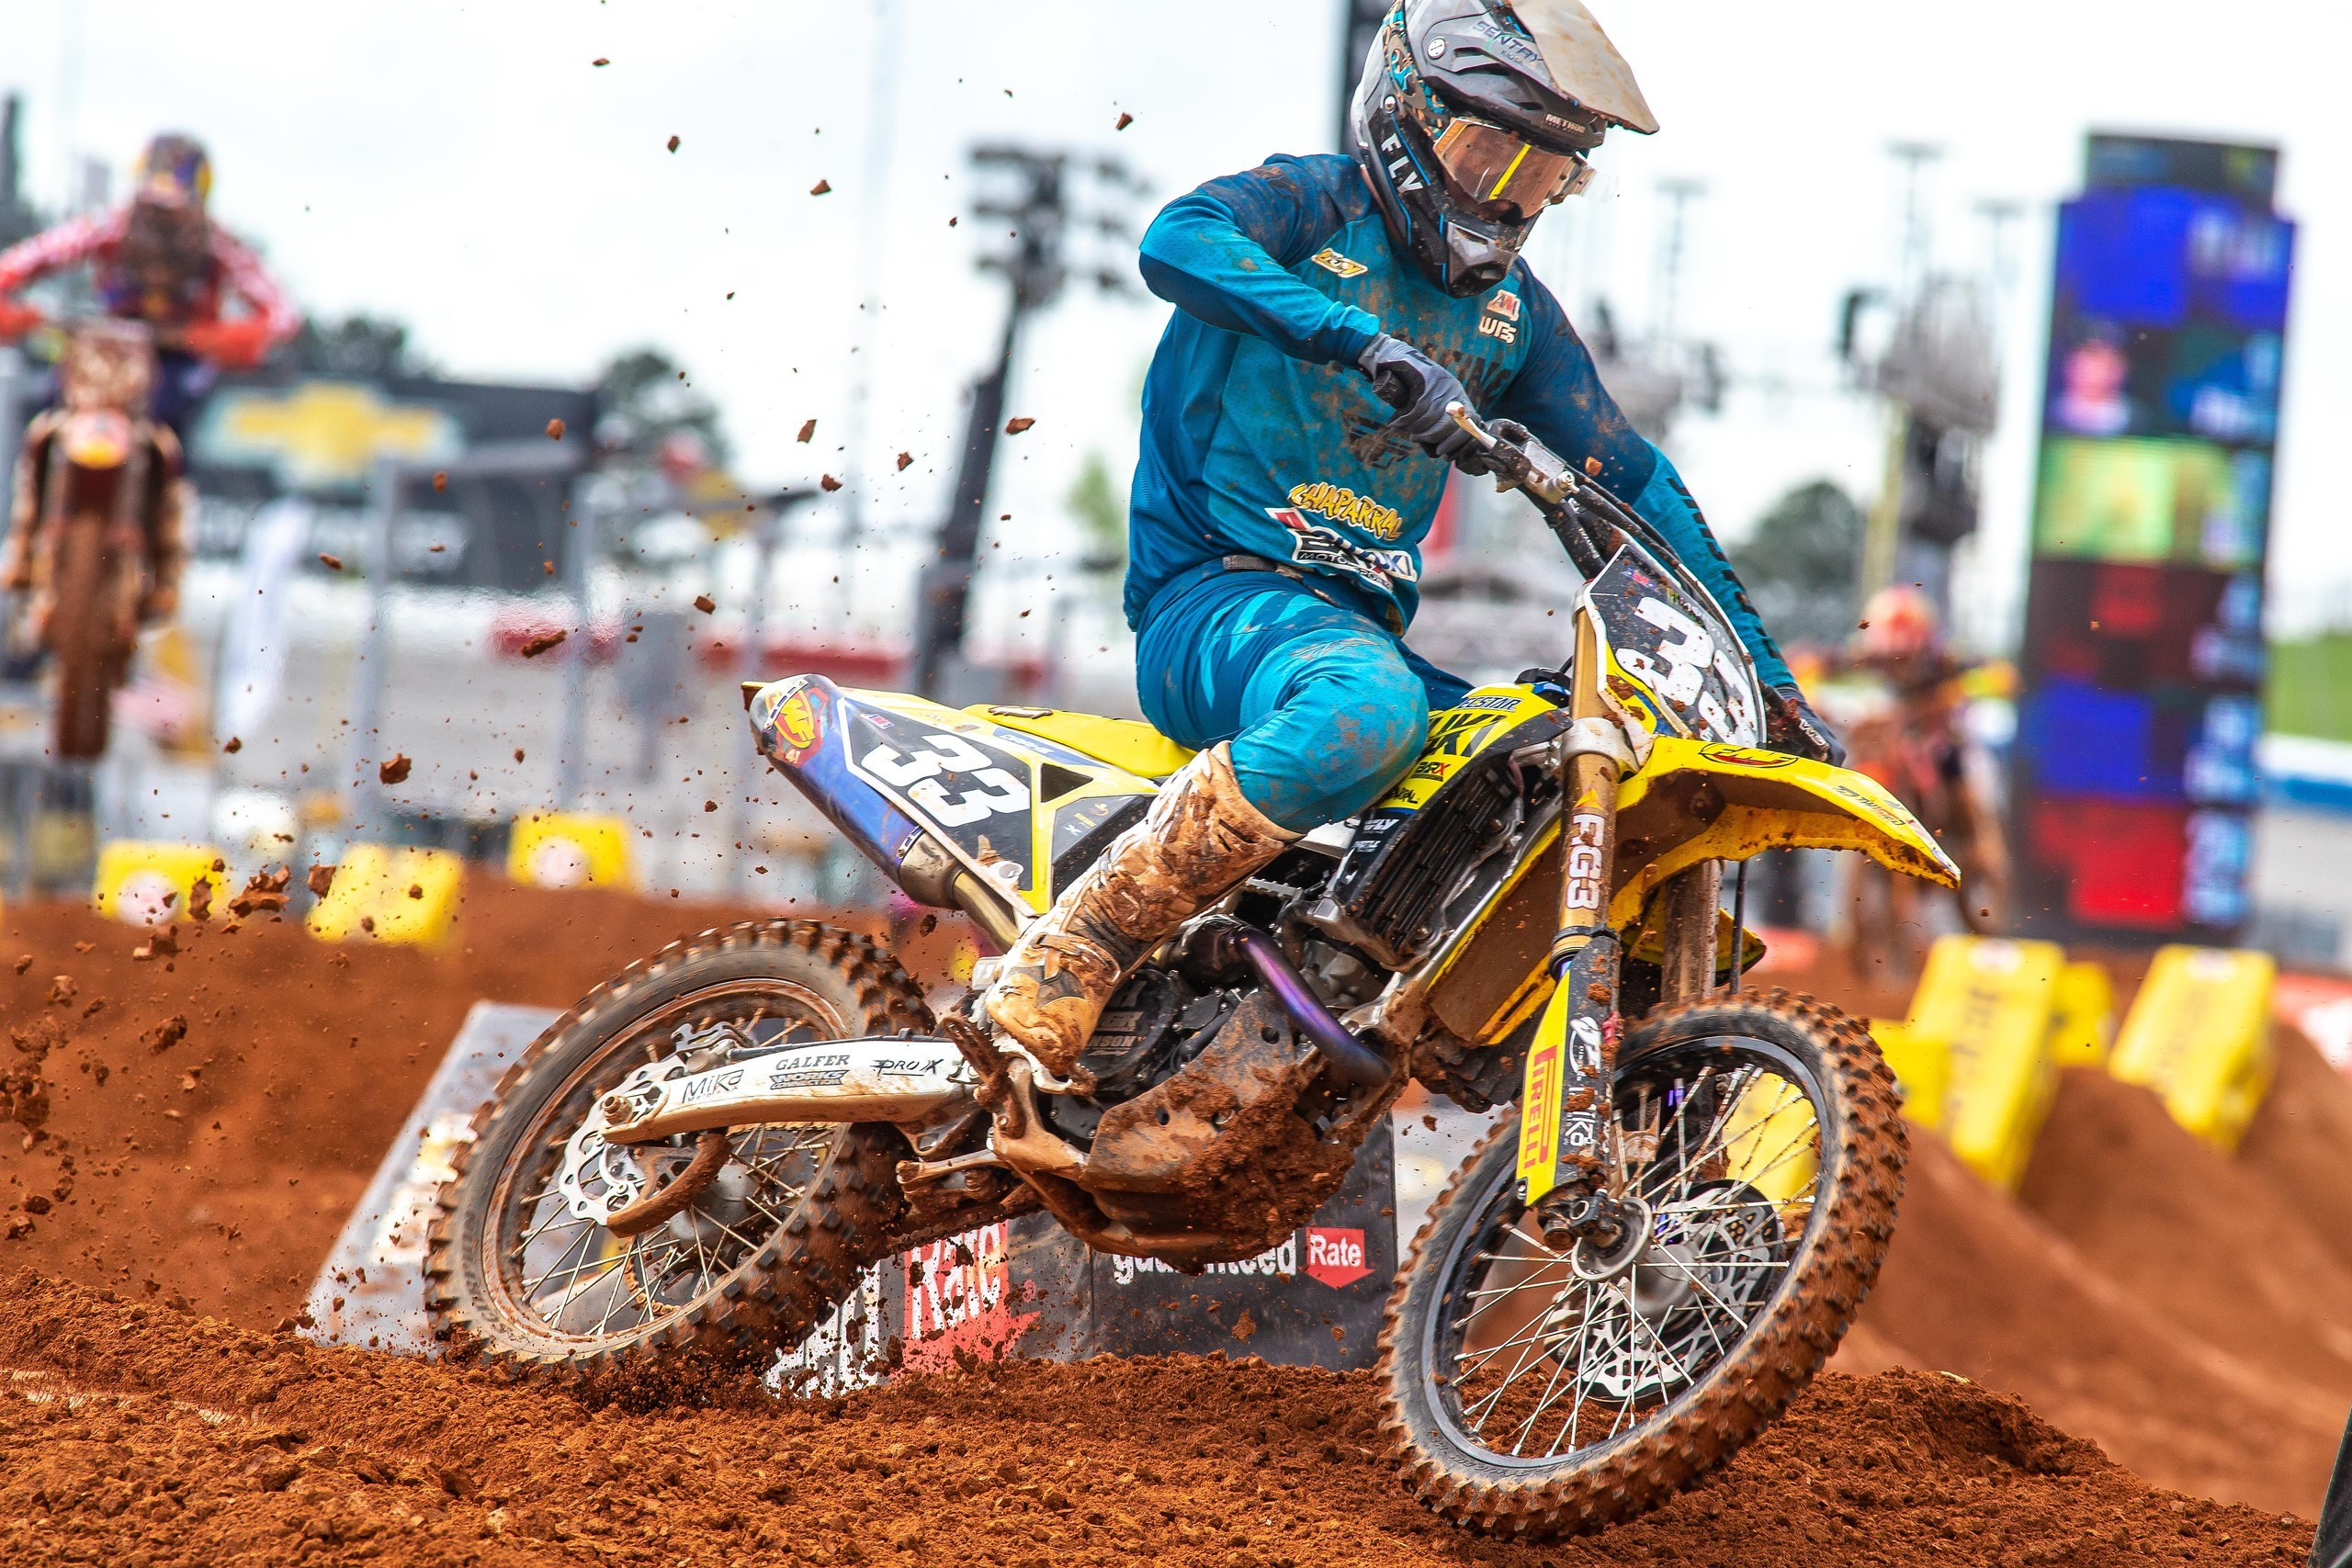 Derek Drake (33) had a solid race in his 2021 Supercross debut on the Suzuki RM-Z250